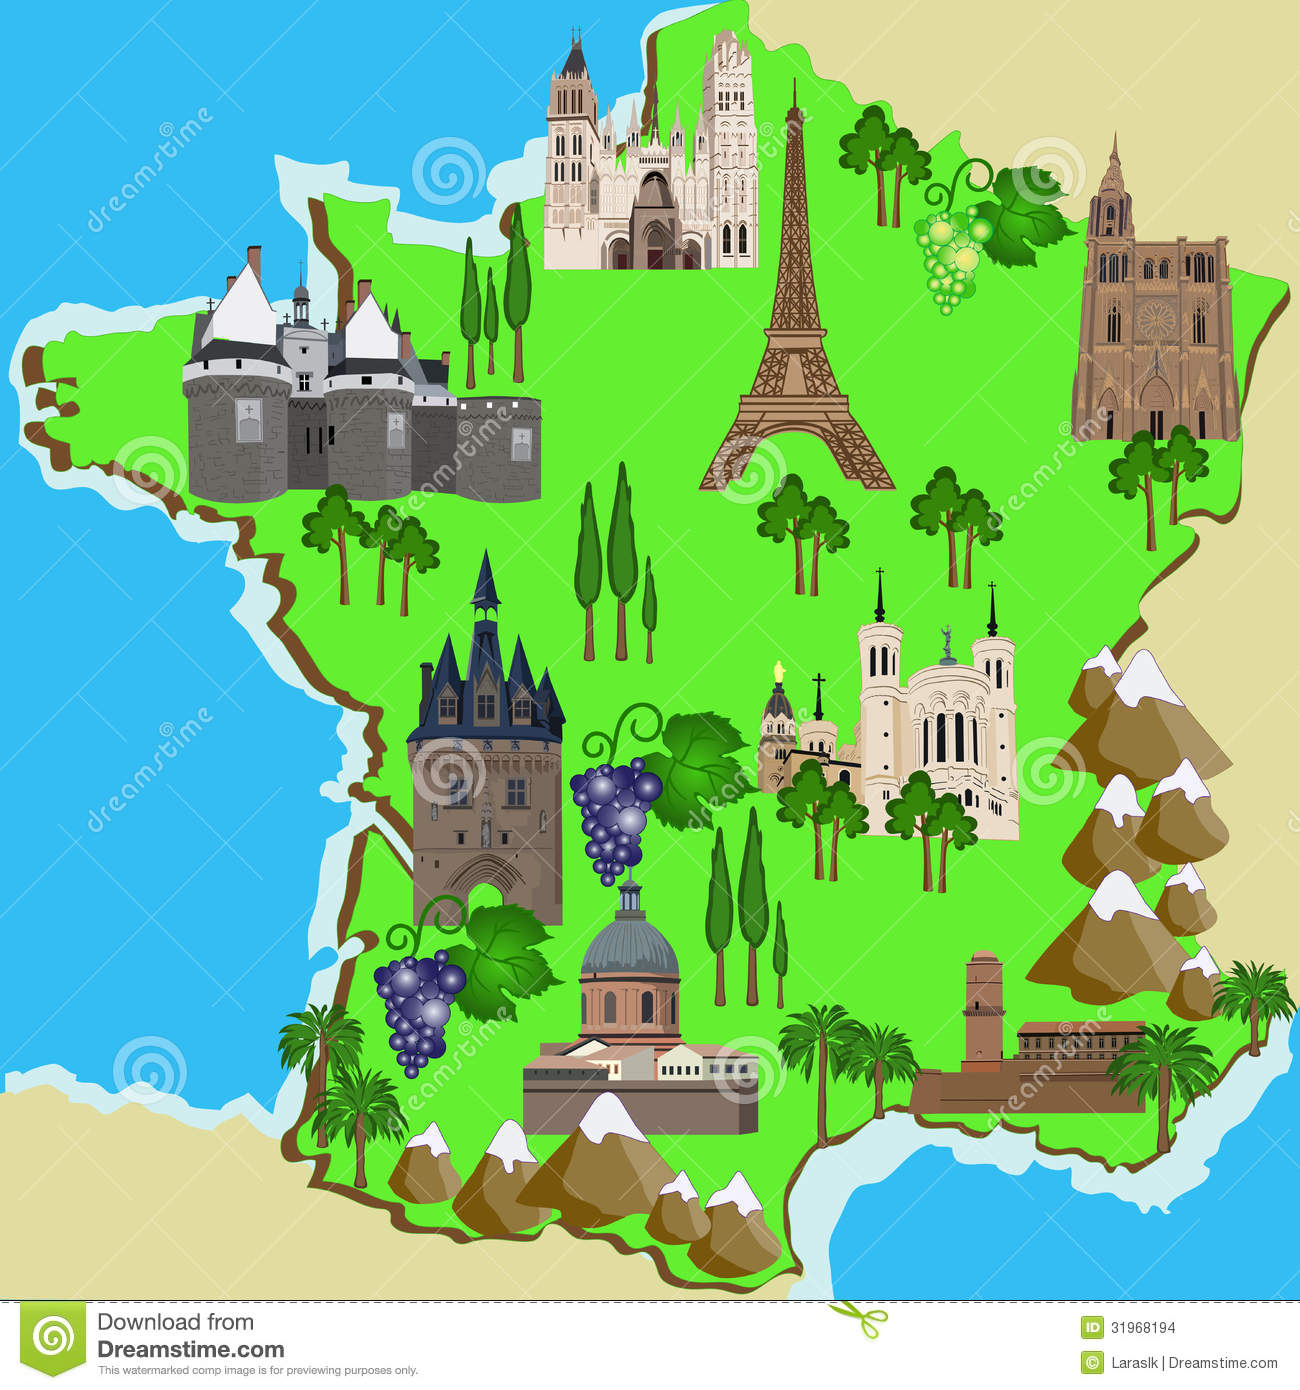 Travel Map Of France.Map Of France Stock Vector Illustration Of Rouen Marseille 31968194